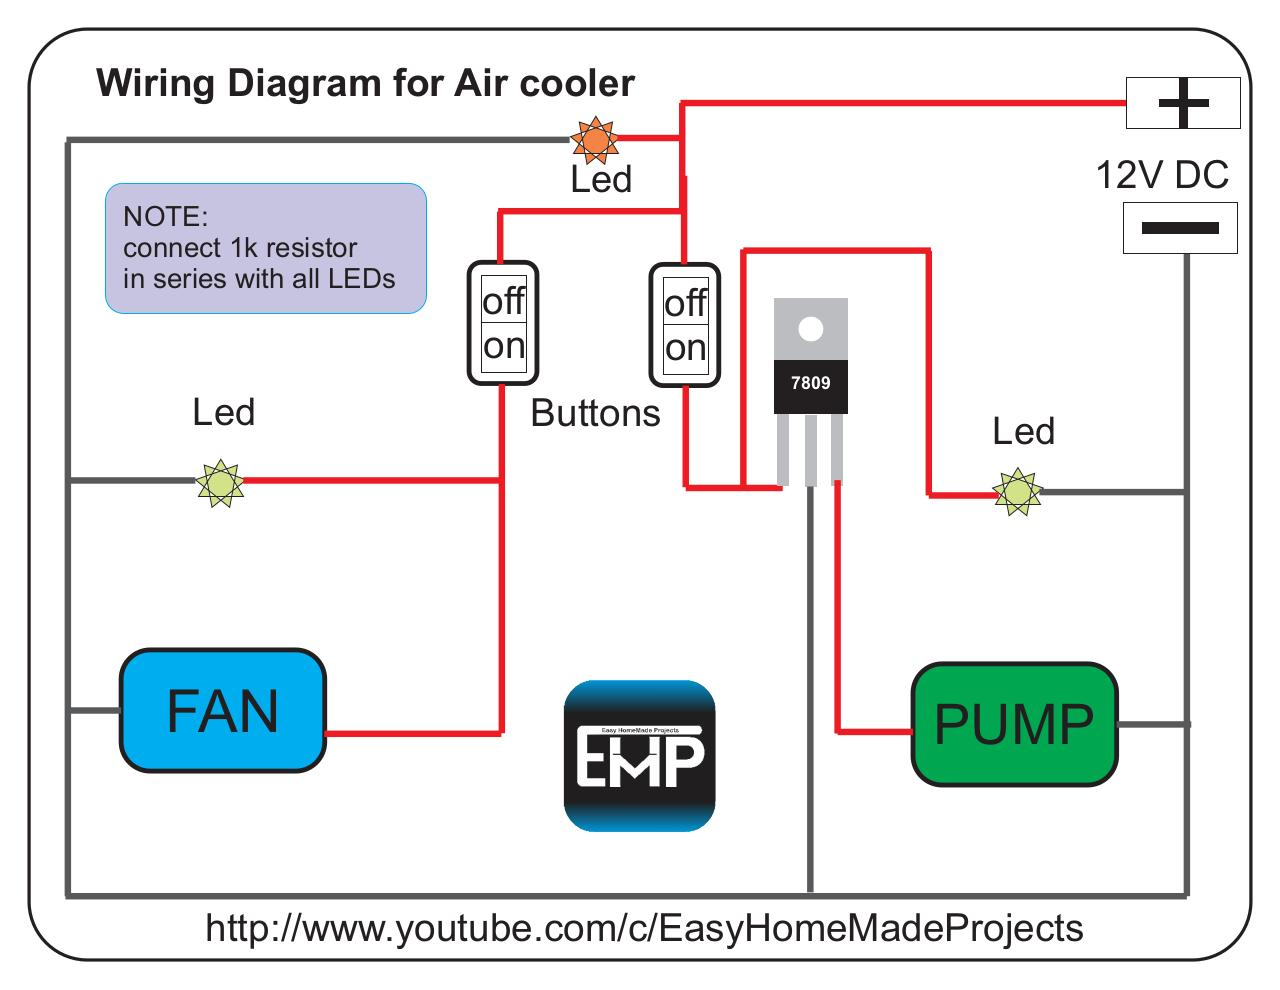 wiring cdr by usman ahmad wiring diagram for mini air cooler pdf 1994 S10 Wiring Diagram PDF document preview wiring diagram for mini air cooler pdf page 1 1